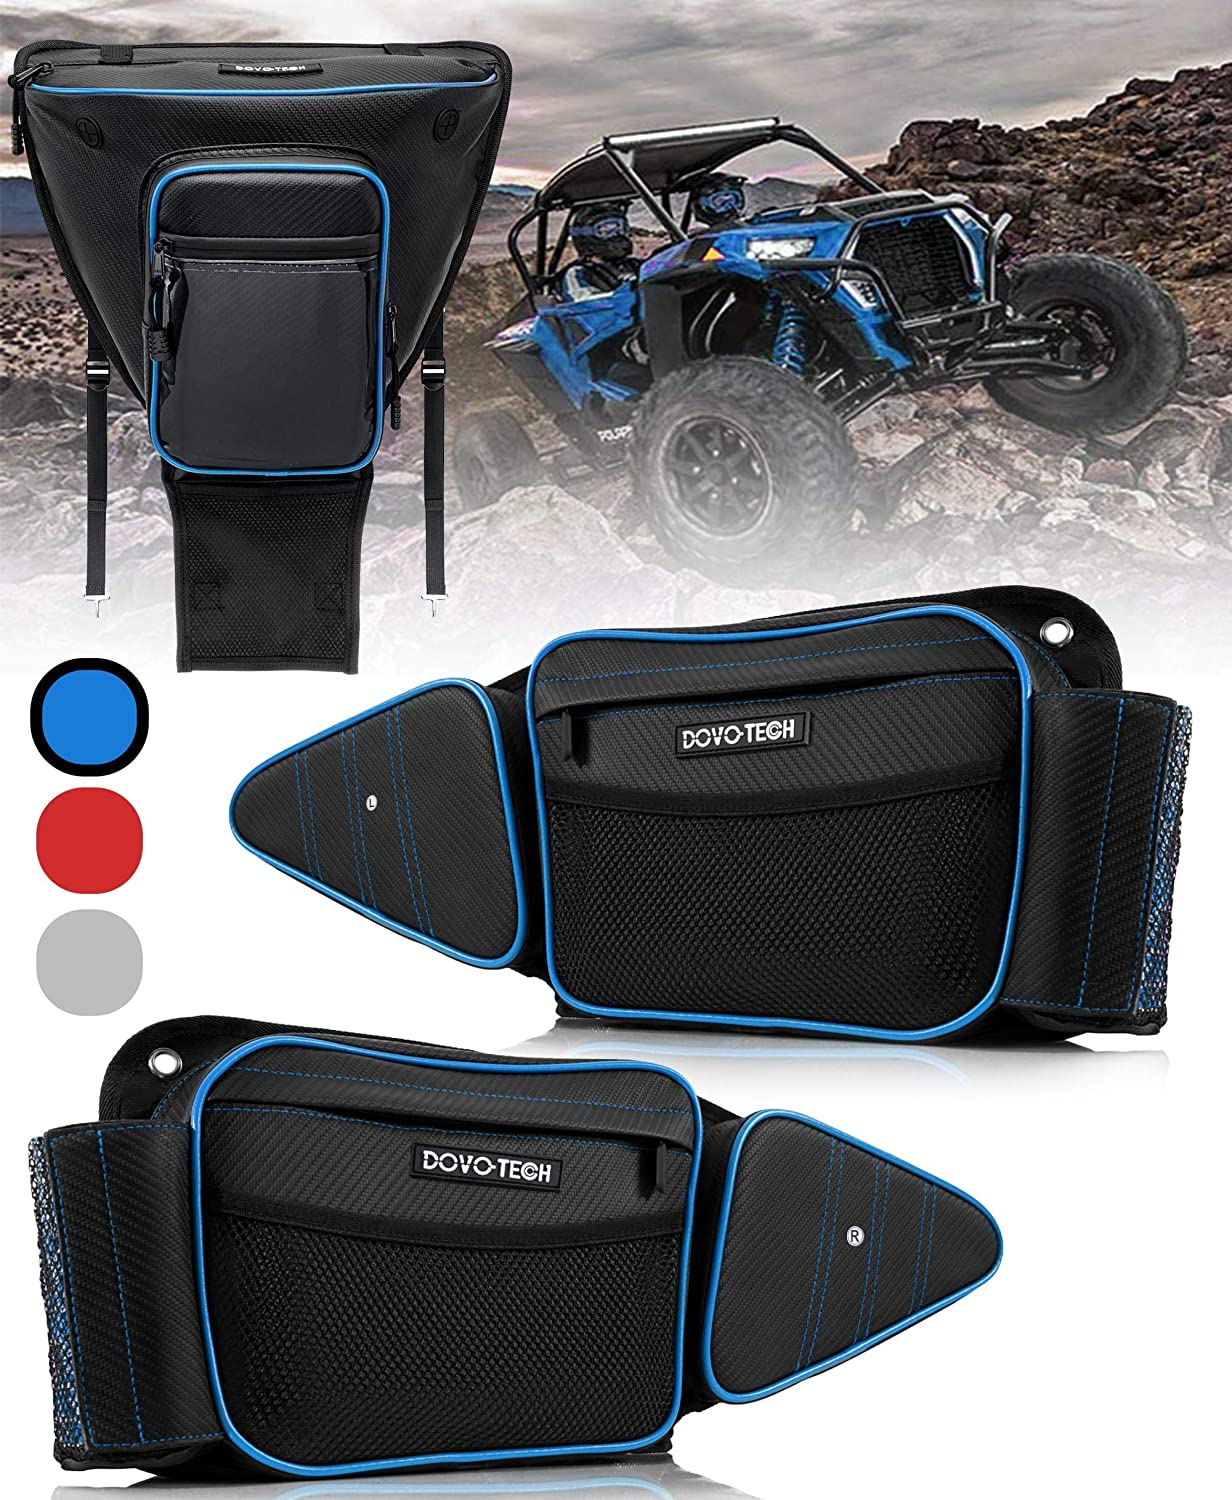 RZR Door Bags and Center Seat Bag- SET of 3 Rzr Storage Bags are Unique solution for rzr 1000 accessories tools-side by side UTV Set of 3 compatible Polaris 2014-2019 Rzr 1000 Xp turbo (BLUE SET of 3)